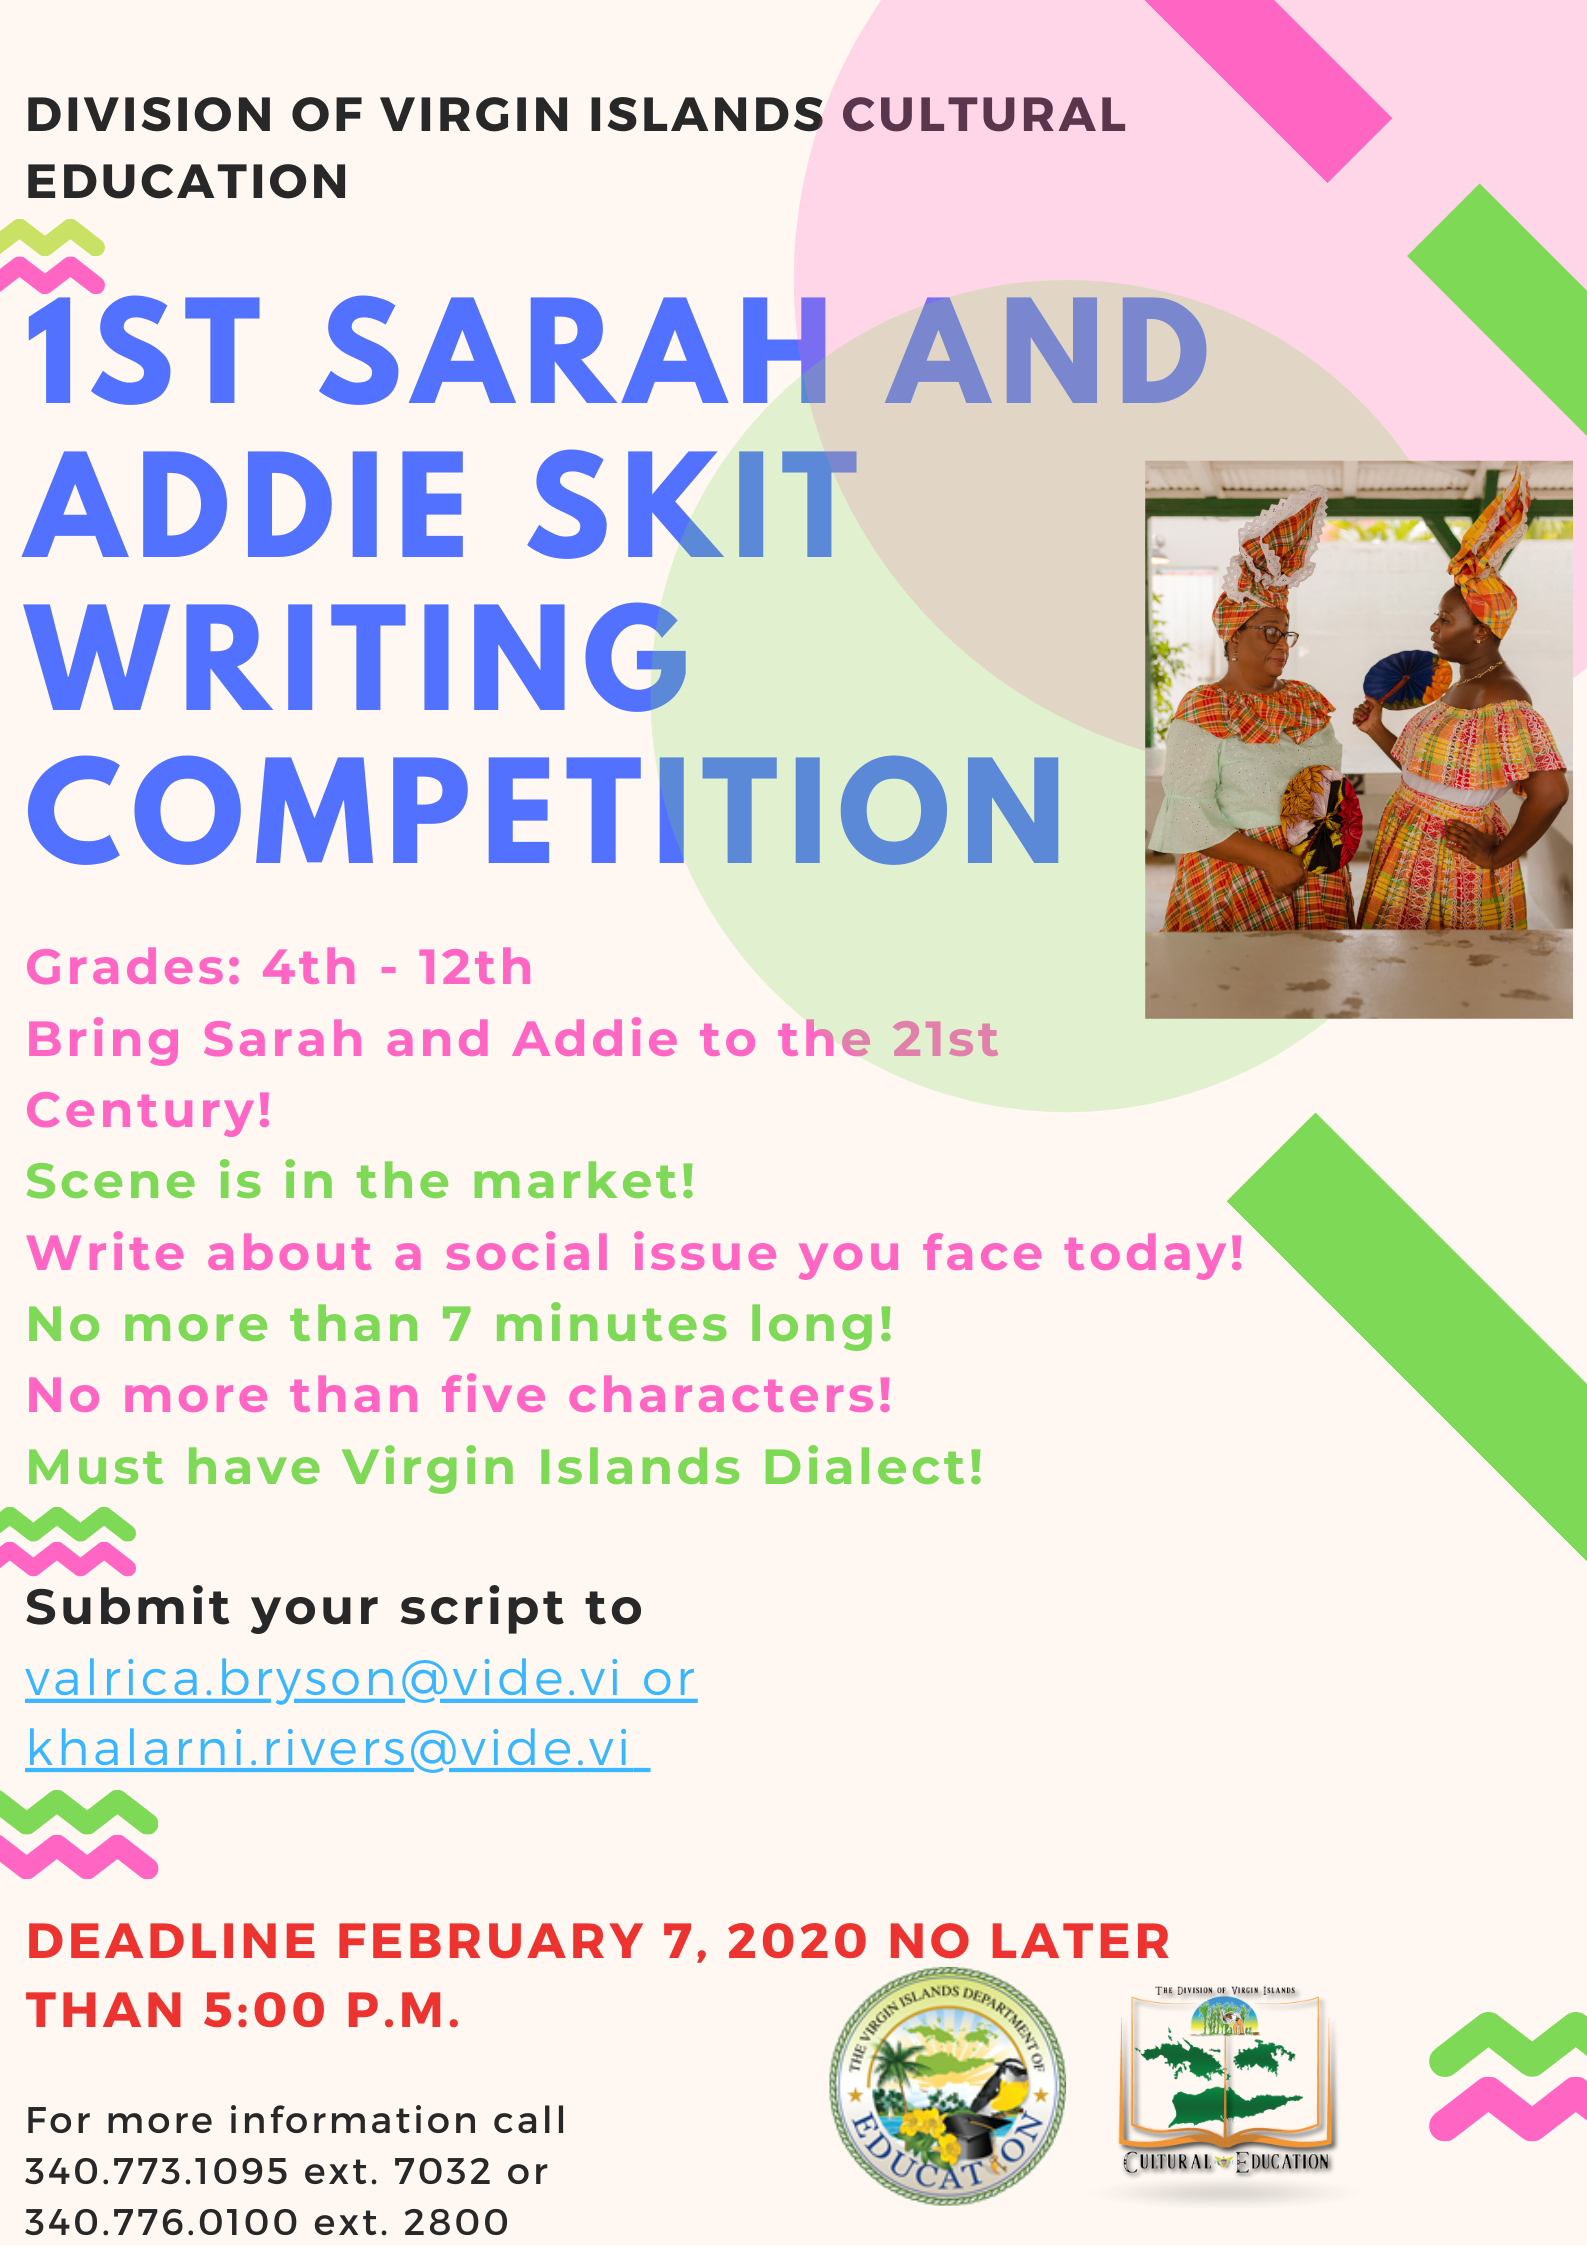 Sarah and Addie Skit writing competition-logo.png